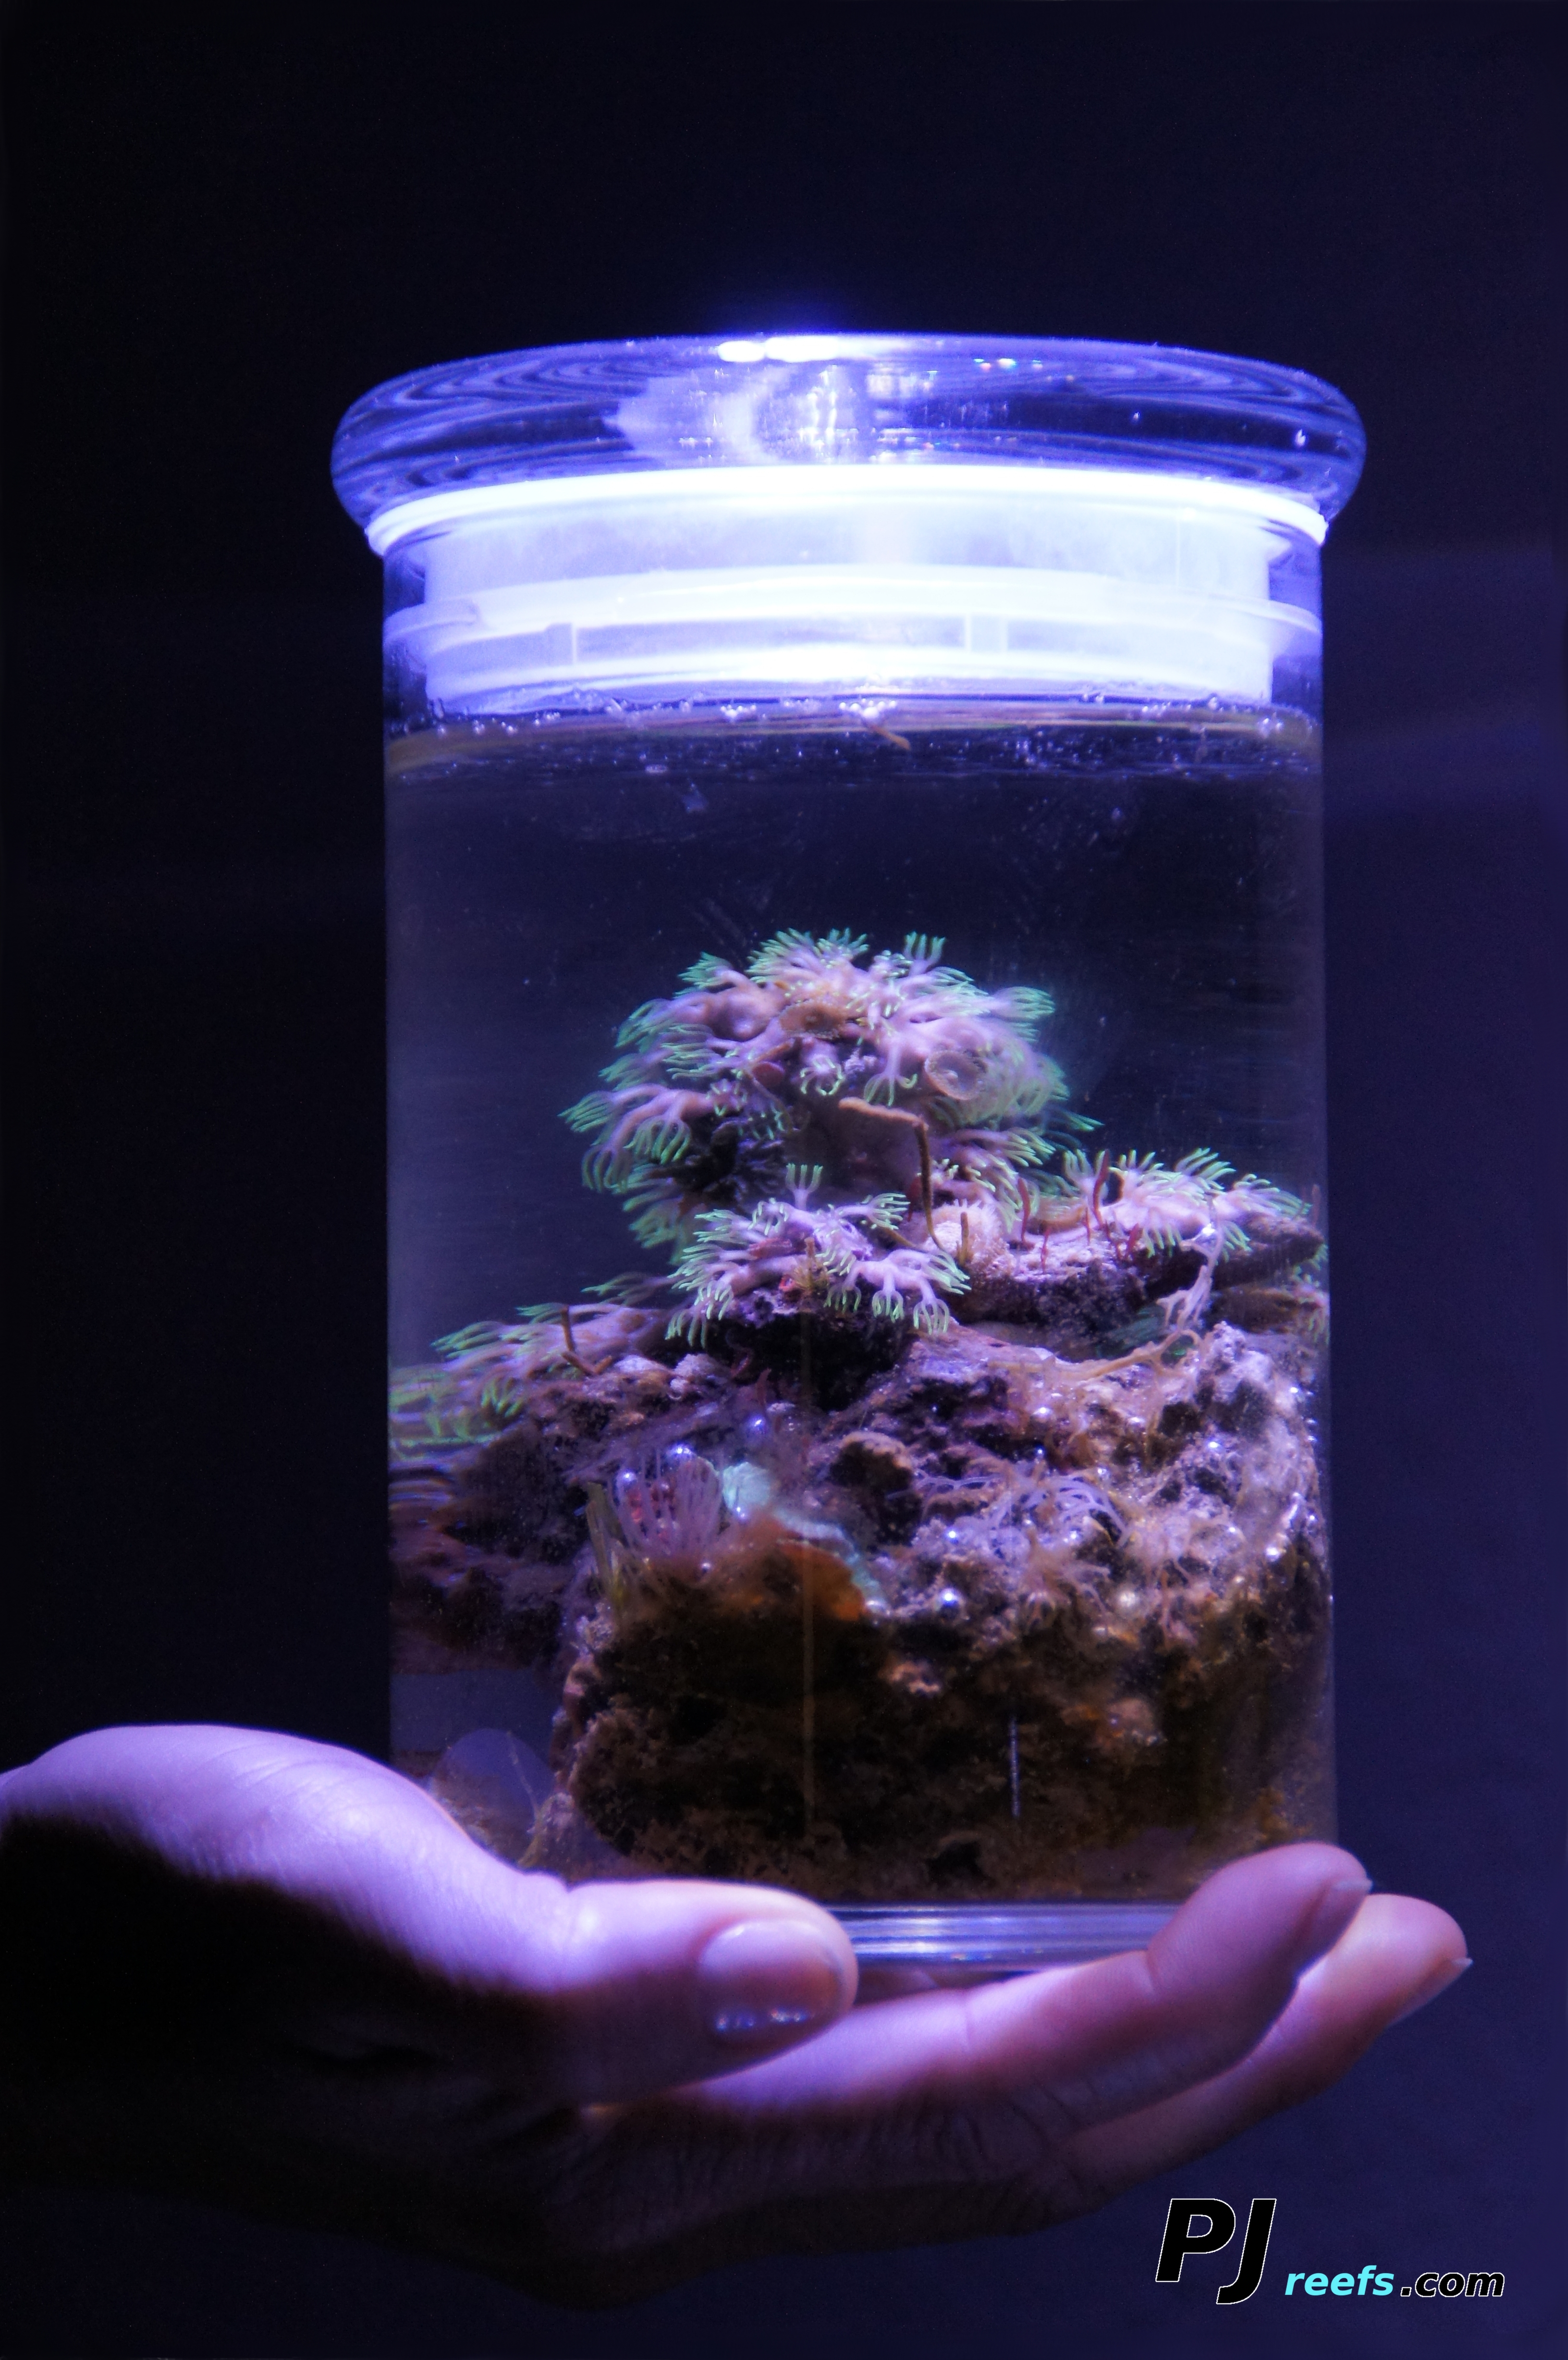 A low maintenance/self sustaining Saltwater ecosystem